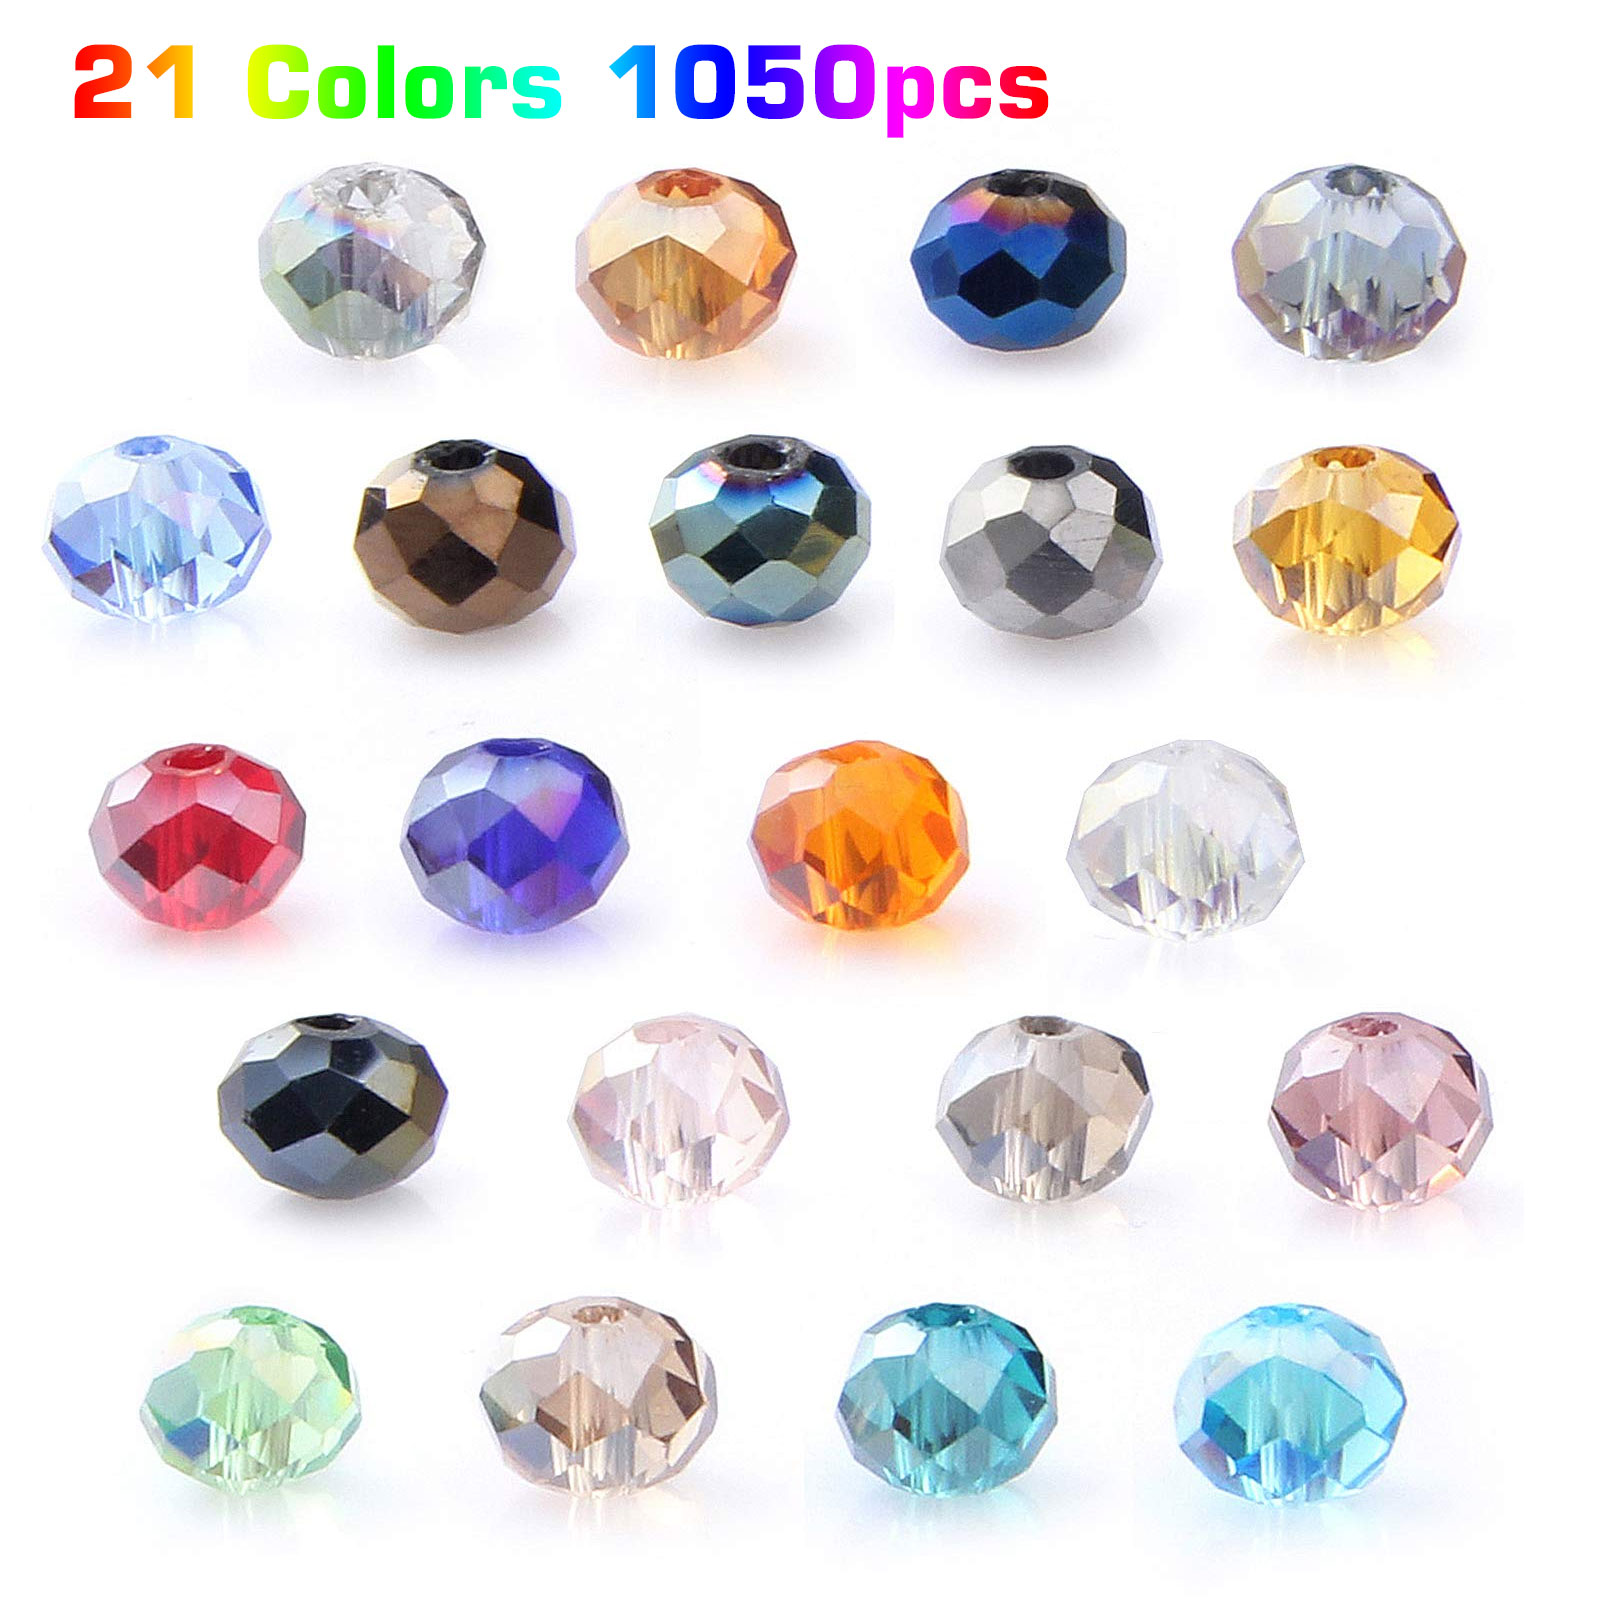 Crystal Glass Beads 6mm 500pcs Briollete Rondelle Faceted Spacer Bead Sparkle AB Loose Beading Charms DIY for Bracelet Earring Necklace Jewelry Making Craft Art Decoration Blue Mixed, 4x6mm